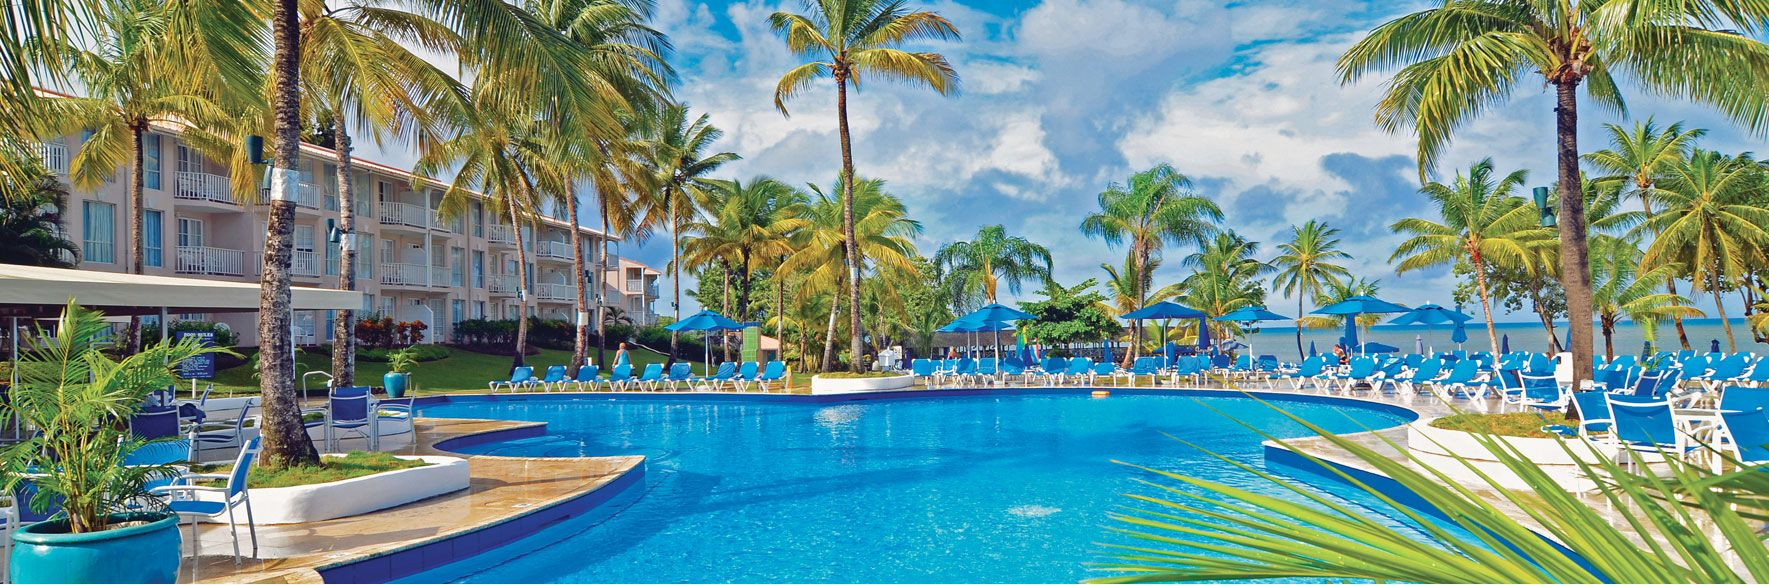 All Inclusive St Lucia Spa Resort Vacation Packages Morgan Bay Beach Caribbean